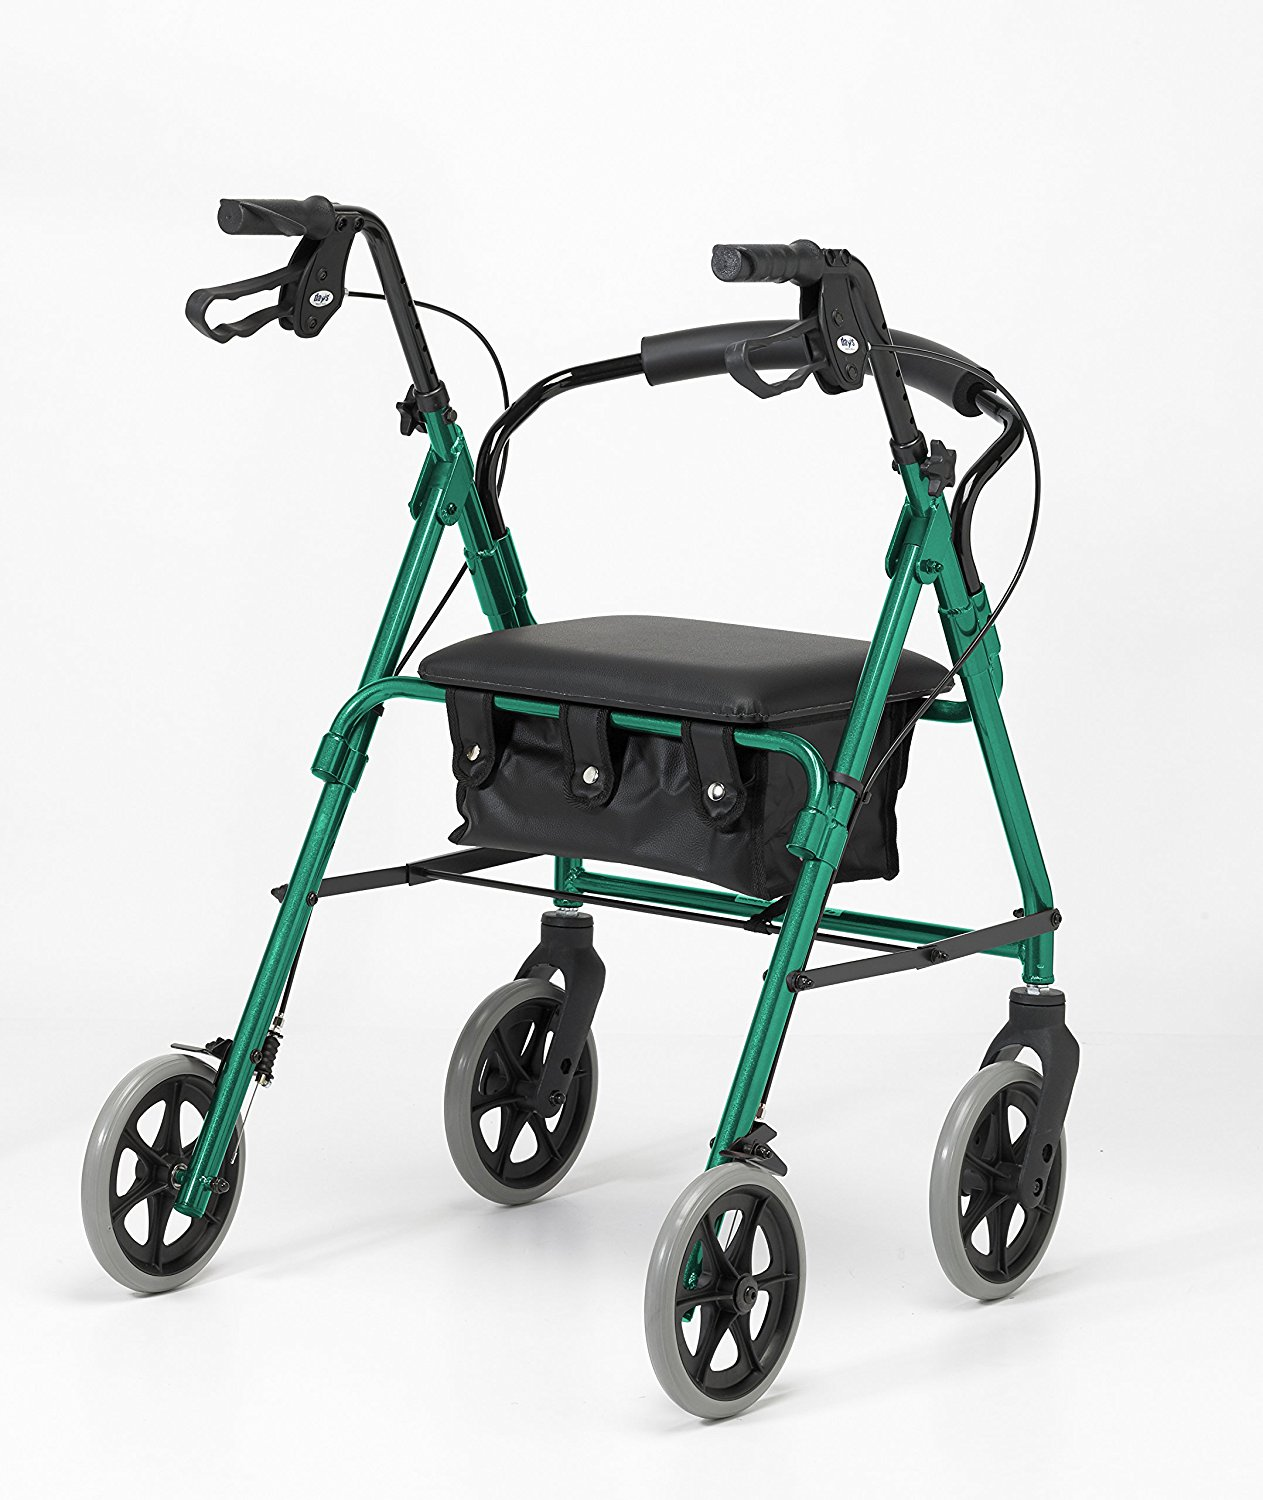 Best Rollator Walkers for Seniors 2021